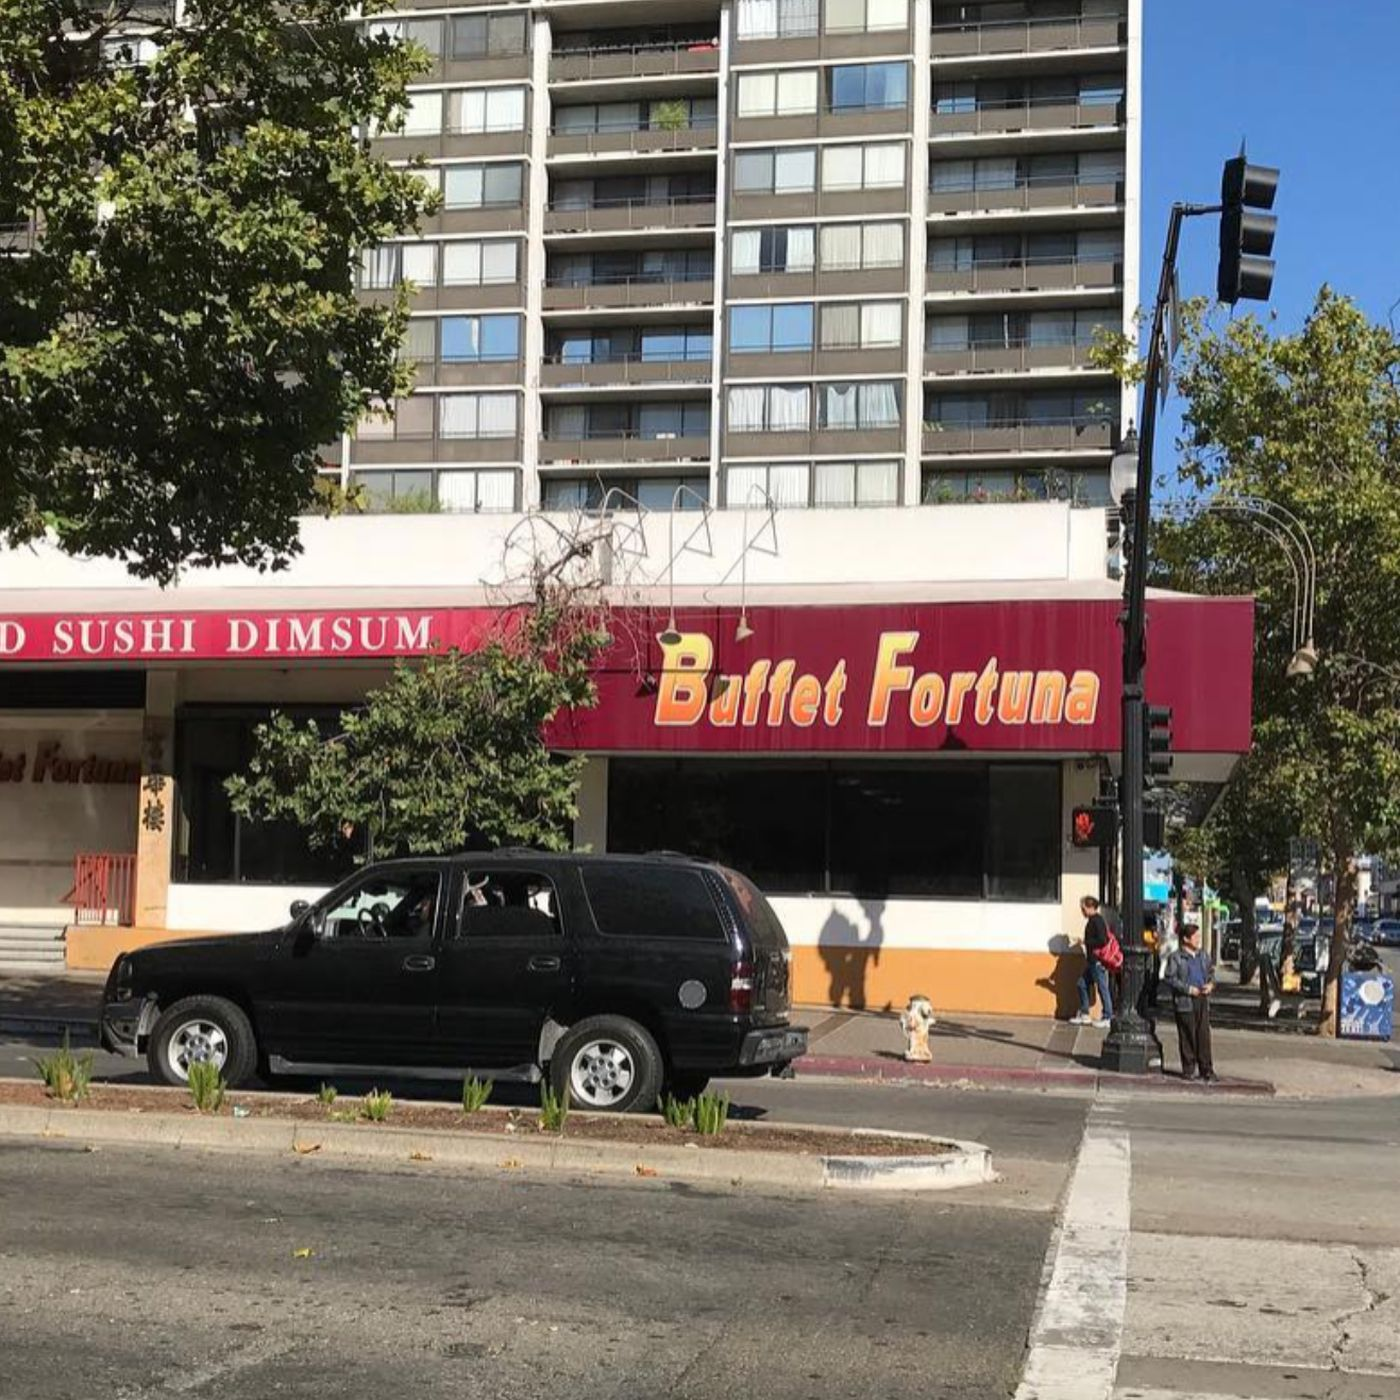 eater.com - Eve Batey - Police, not Protesters, Reportedly Caused Fire at Oakland Restaurant